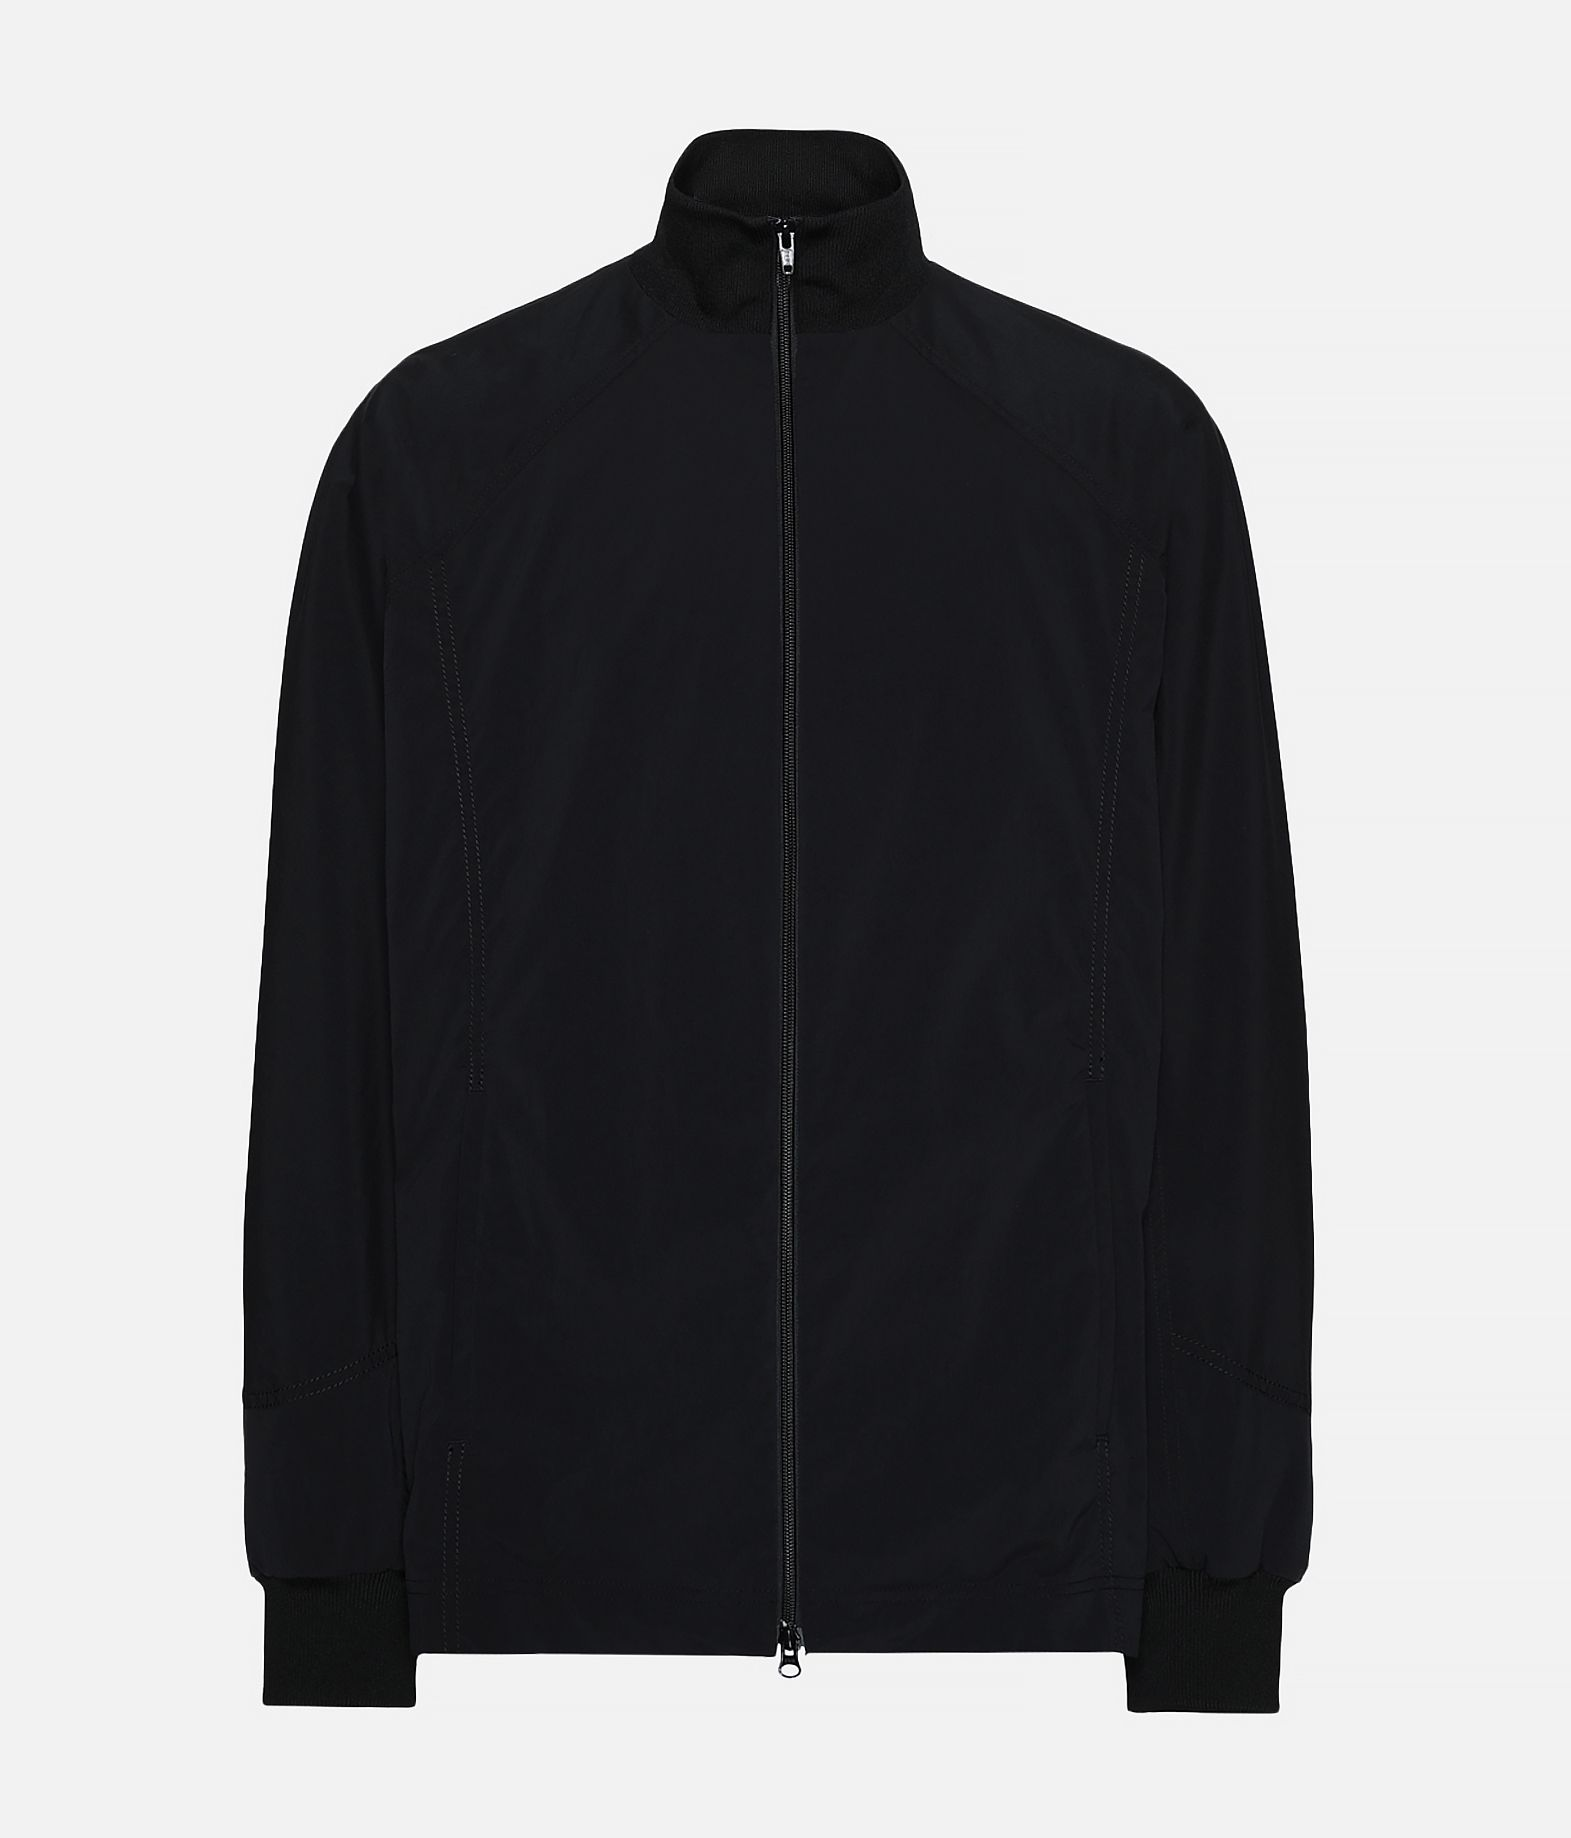 Y-3 Y-3 Luxe Track Jacket Track top メンズ f